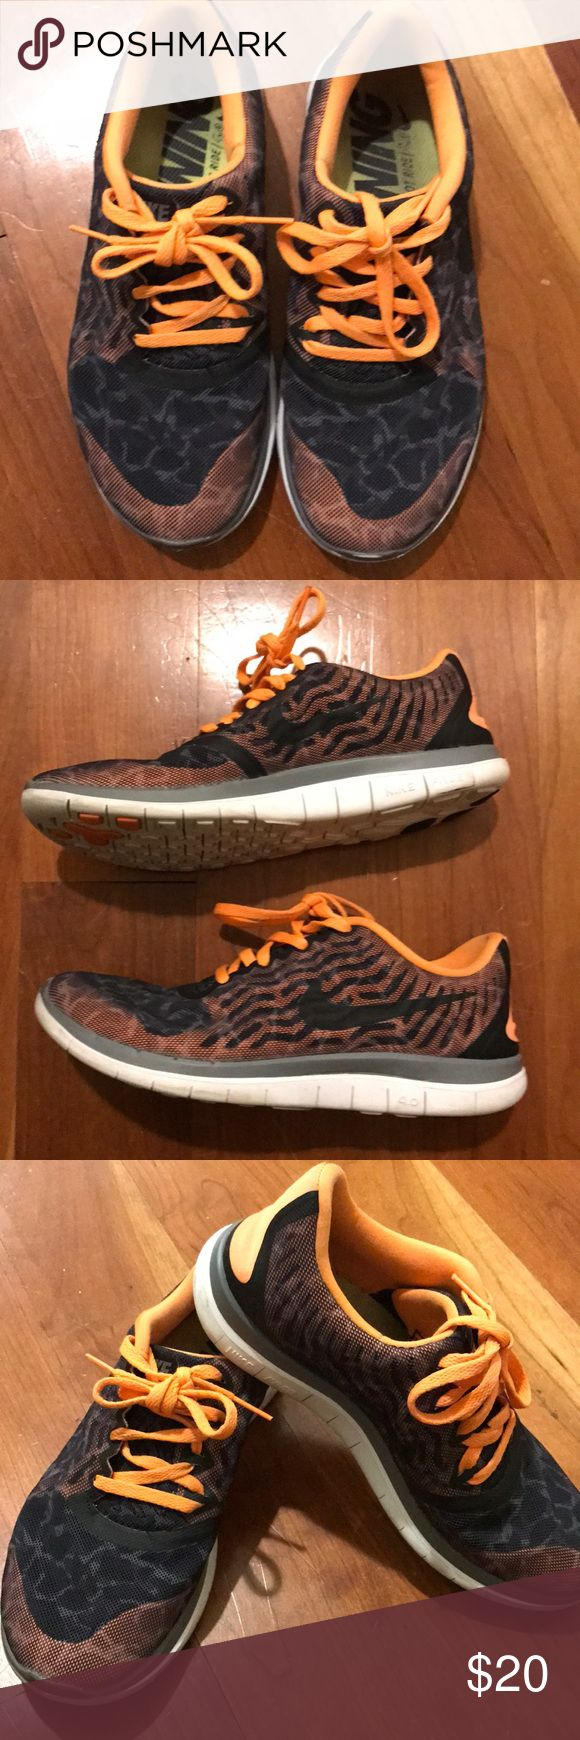 Women's Nike free running sneakers size 7.5 Orange, black and rust colored Nike free running sneakers. Preowned and have been worn but are still in nice used condition. Size 7.5. Nike Shoes Athletic Shoes